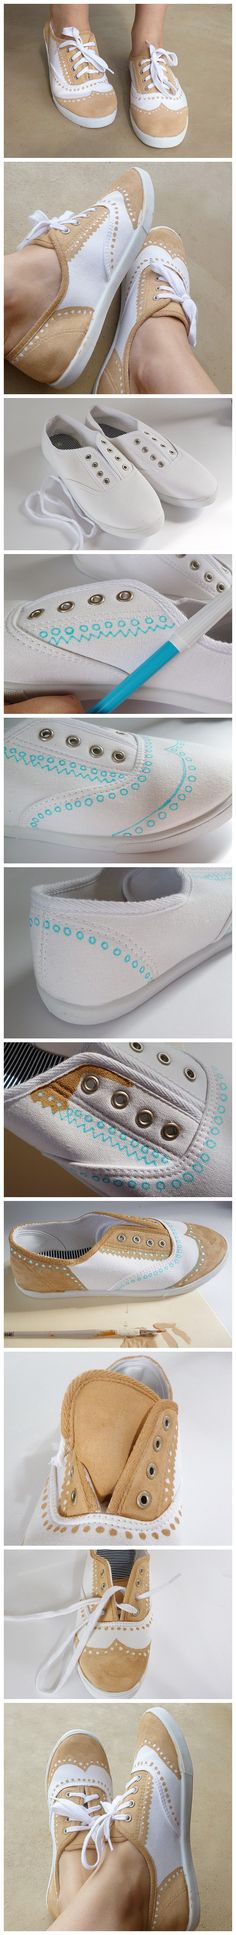 Decorate a Pair of White Keds